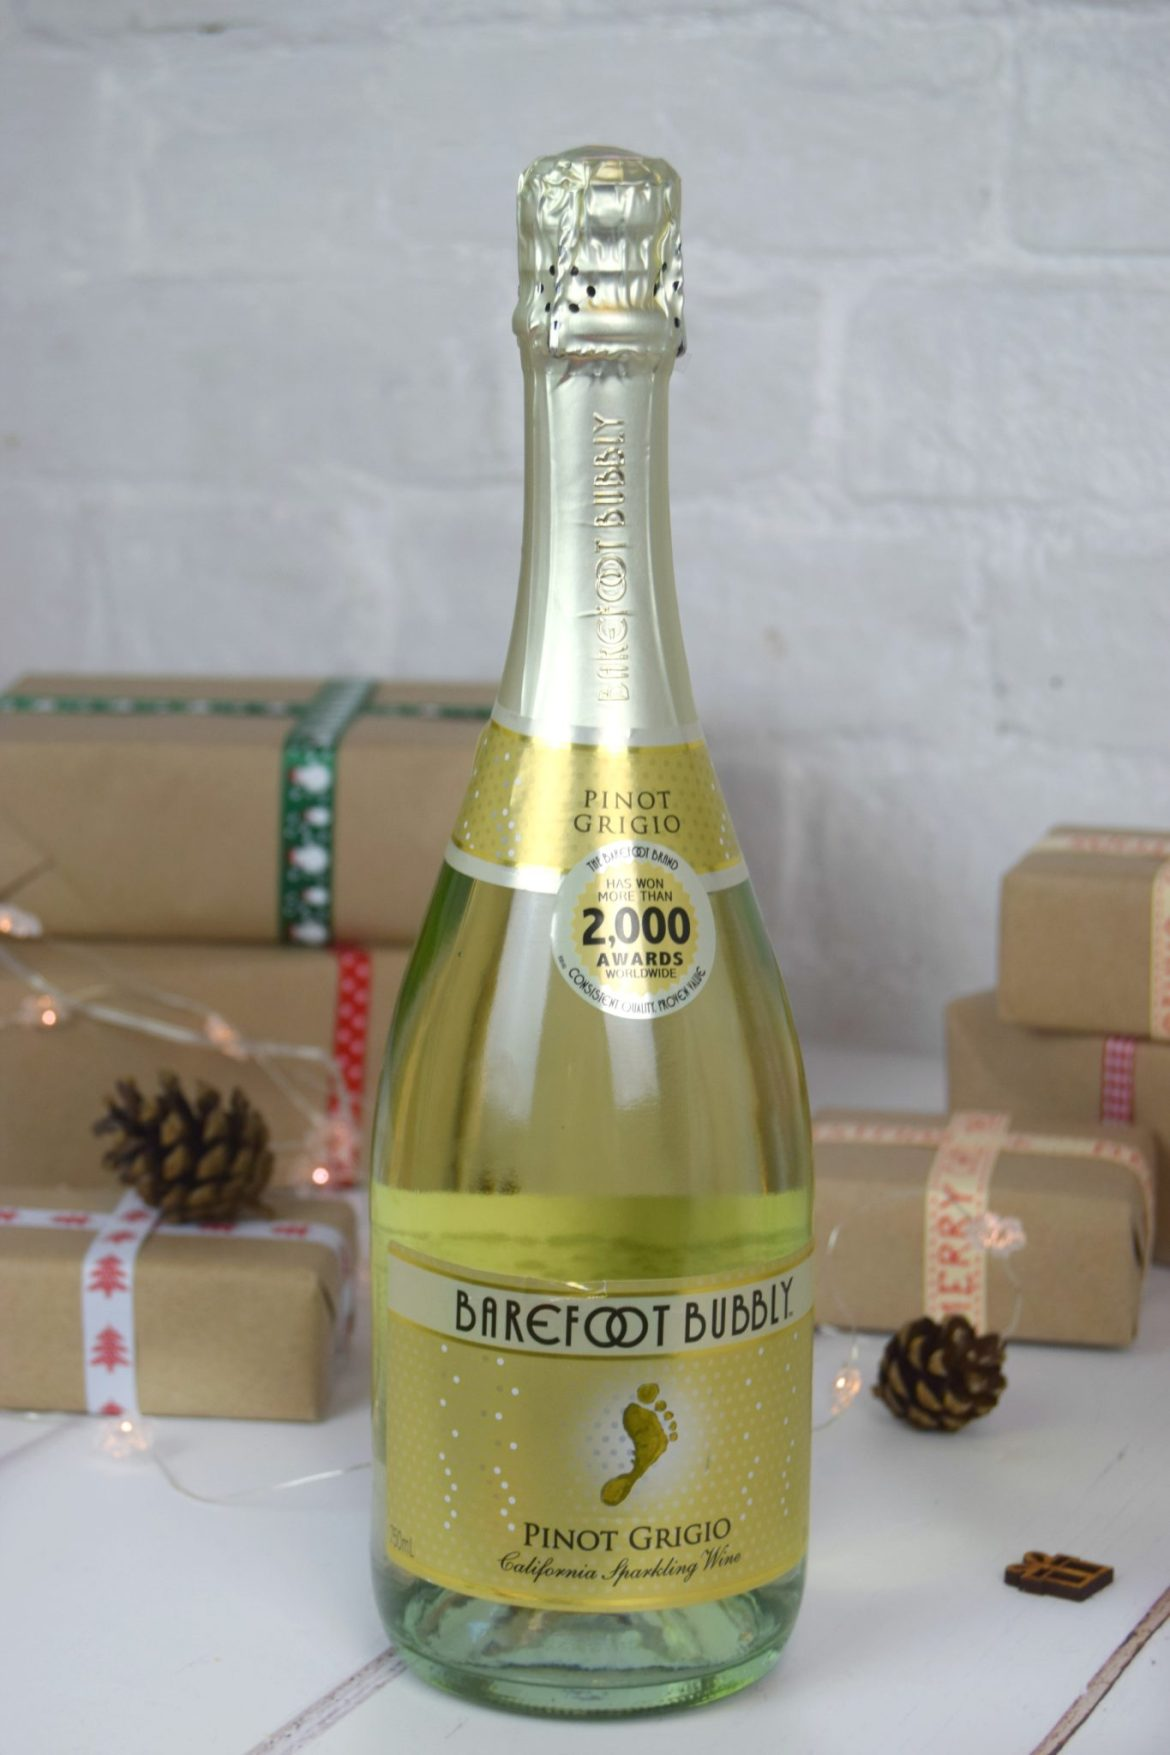 A bottle of Barefoot Bubbly.